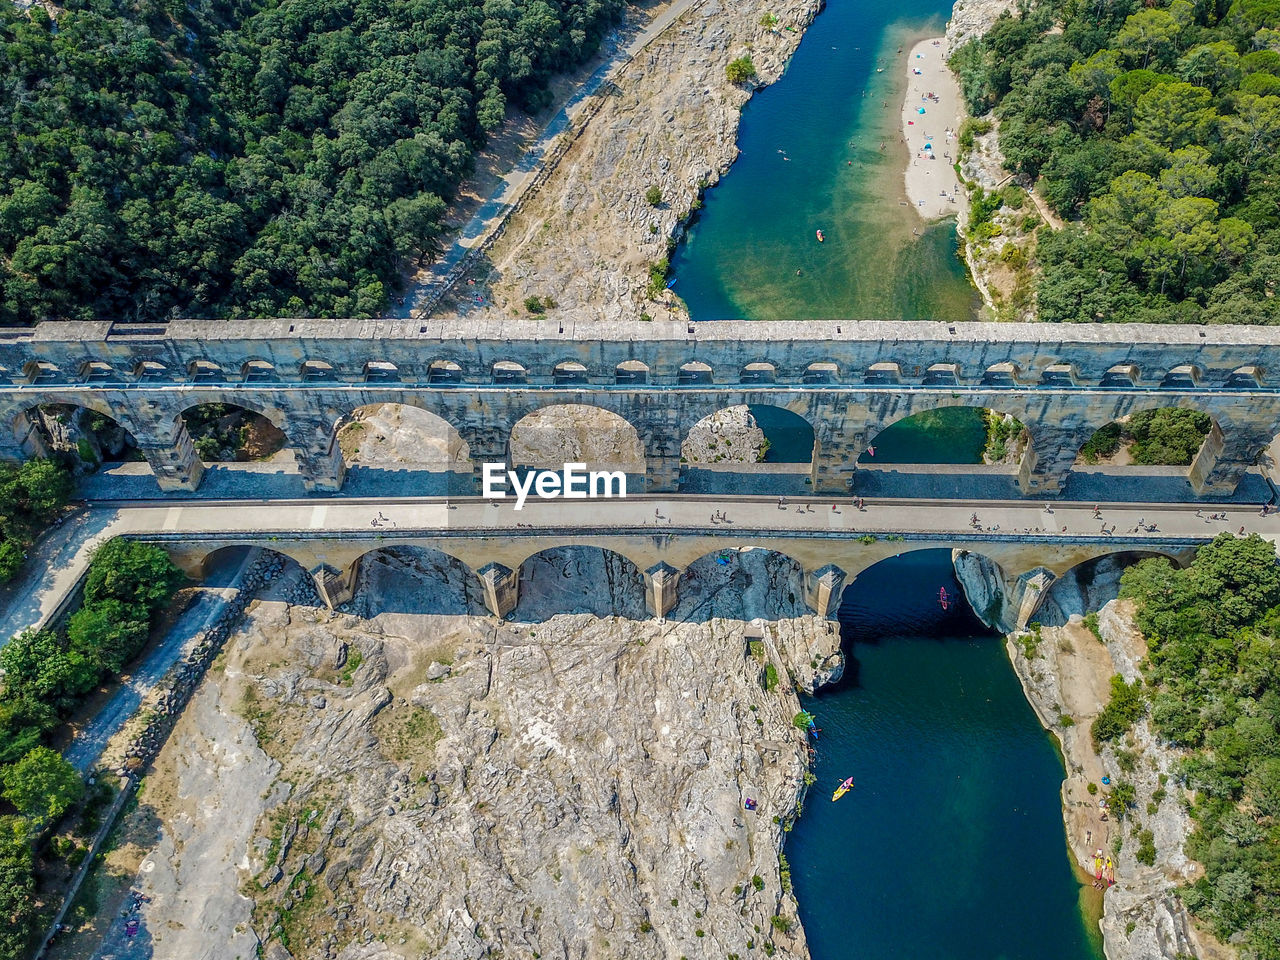 bridge, water, bridge - man made structure, connection, built structure, architecture, river, arch bridge, nature, tree, plant, day, dam, arch, transportation, no people, reflection, hydroelectric power, high angle view, outdoors